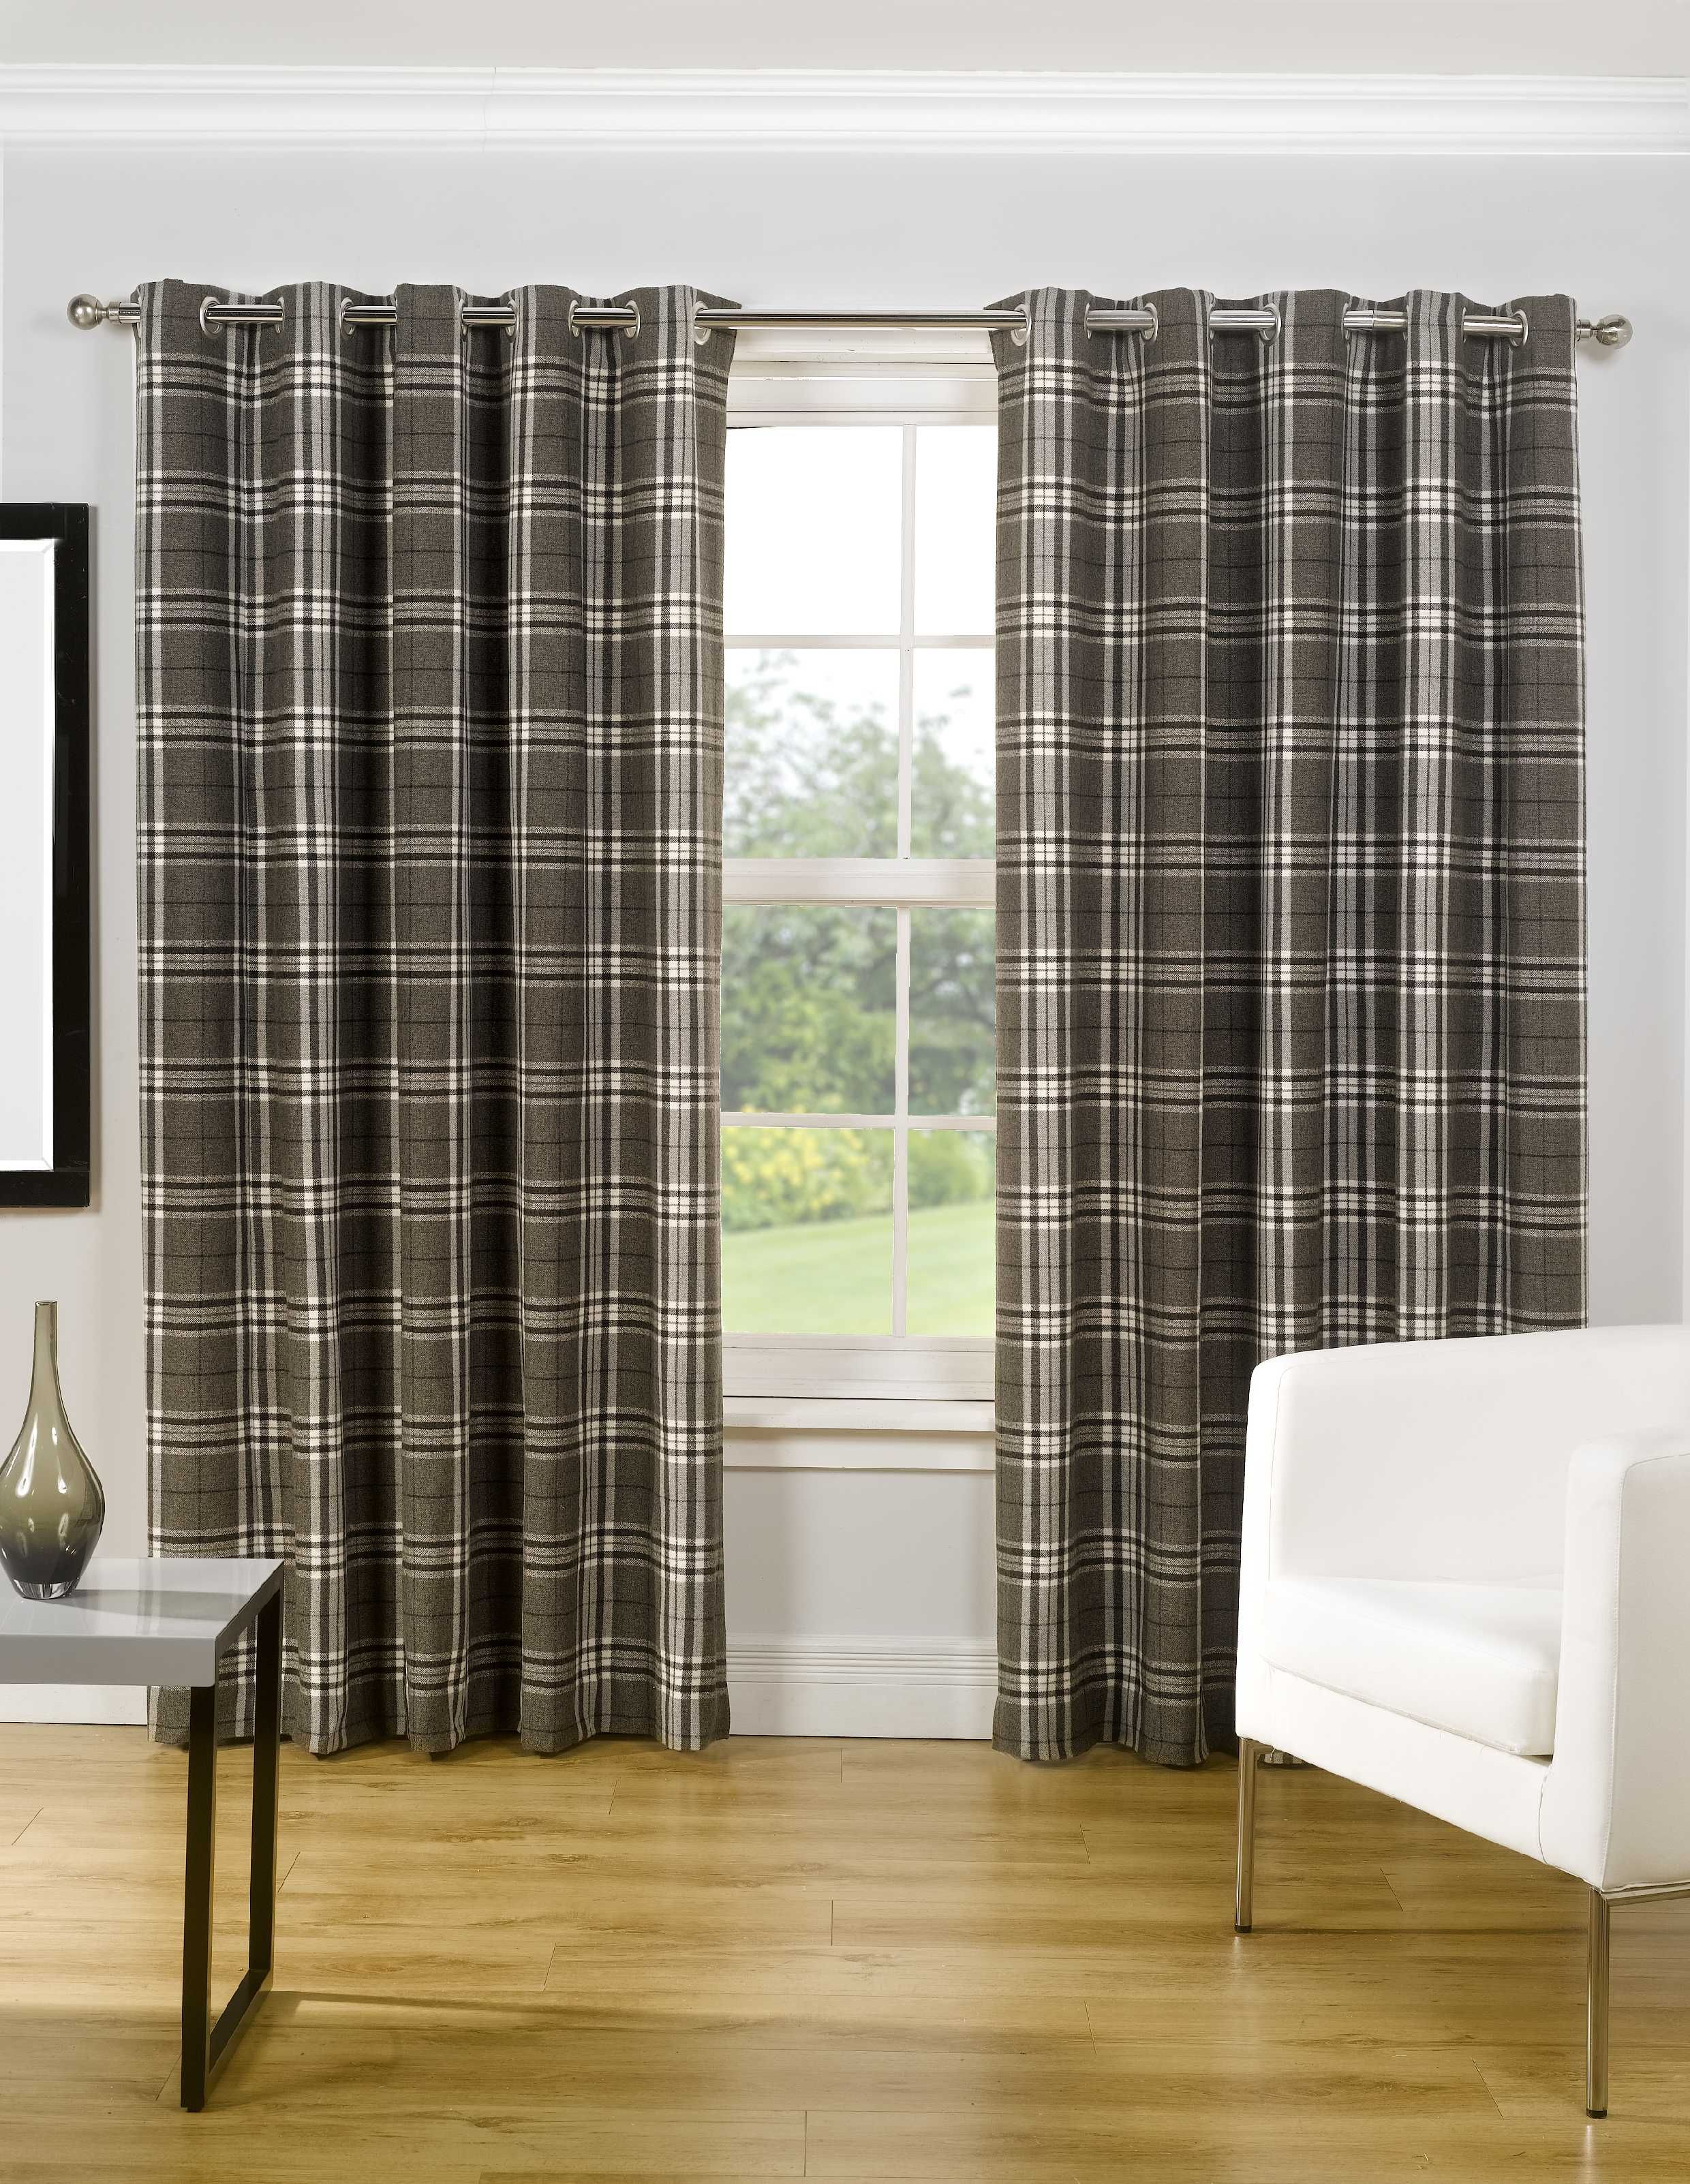 ideas image u kitchen for curtain blanket country shocking and drapes ready pict throws curtains styles stockholm ikea marvelous french made blad imgid